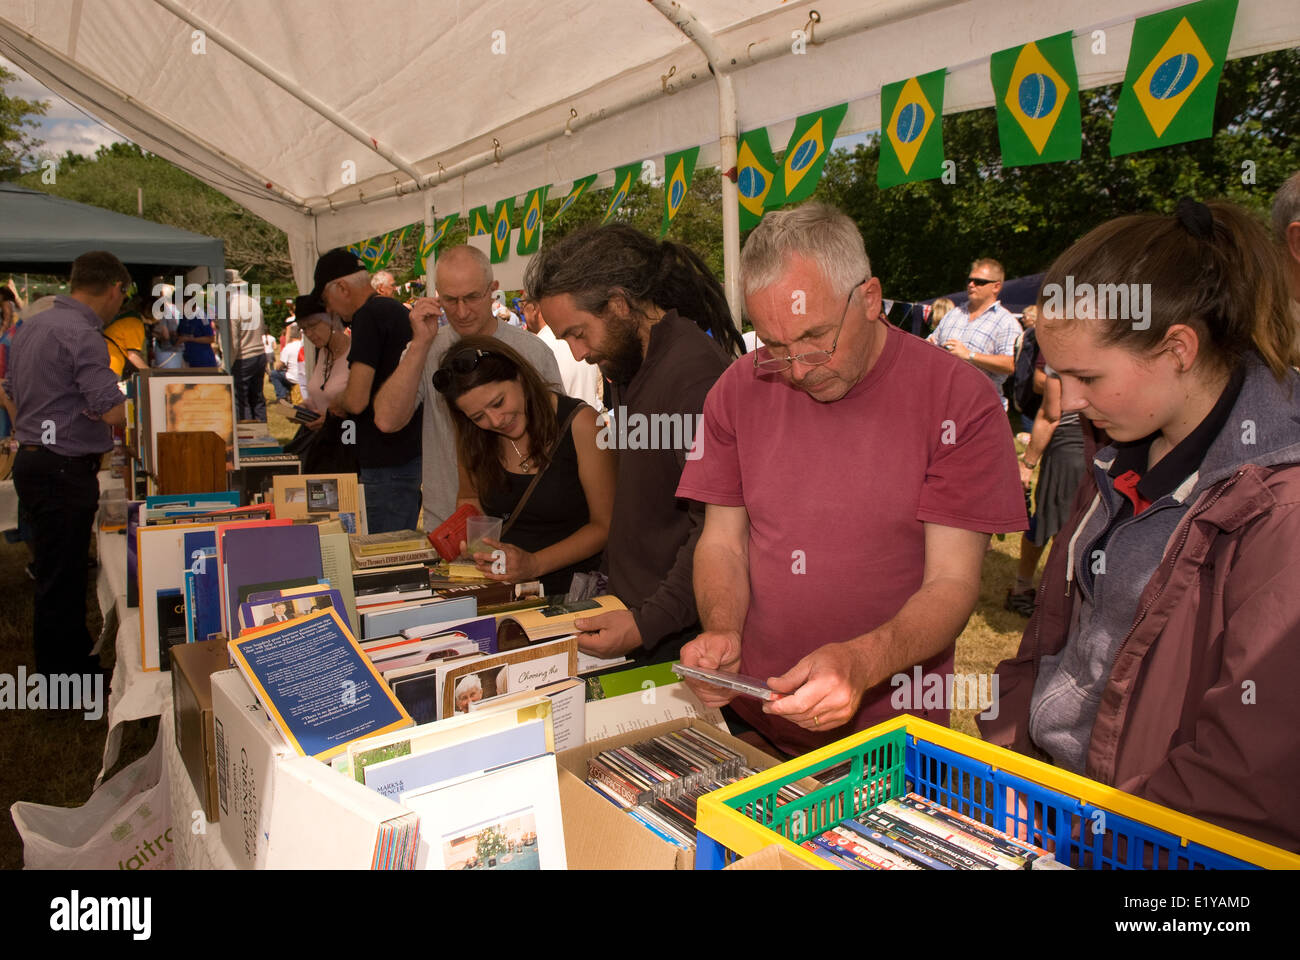 Visitors perusing book stall at a village summer fair which had a Brazil/World Cup 2014 theme, Dockenfield, UK. - Stock Image